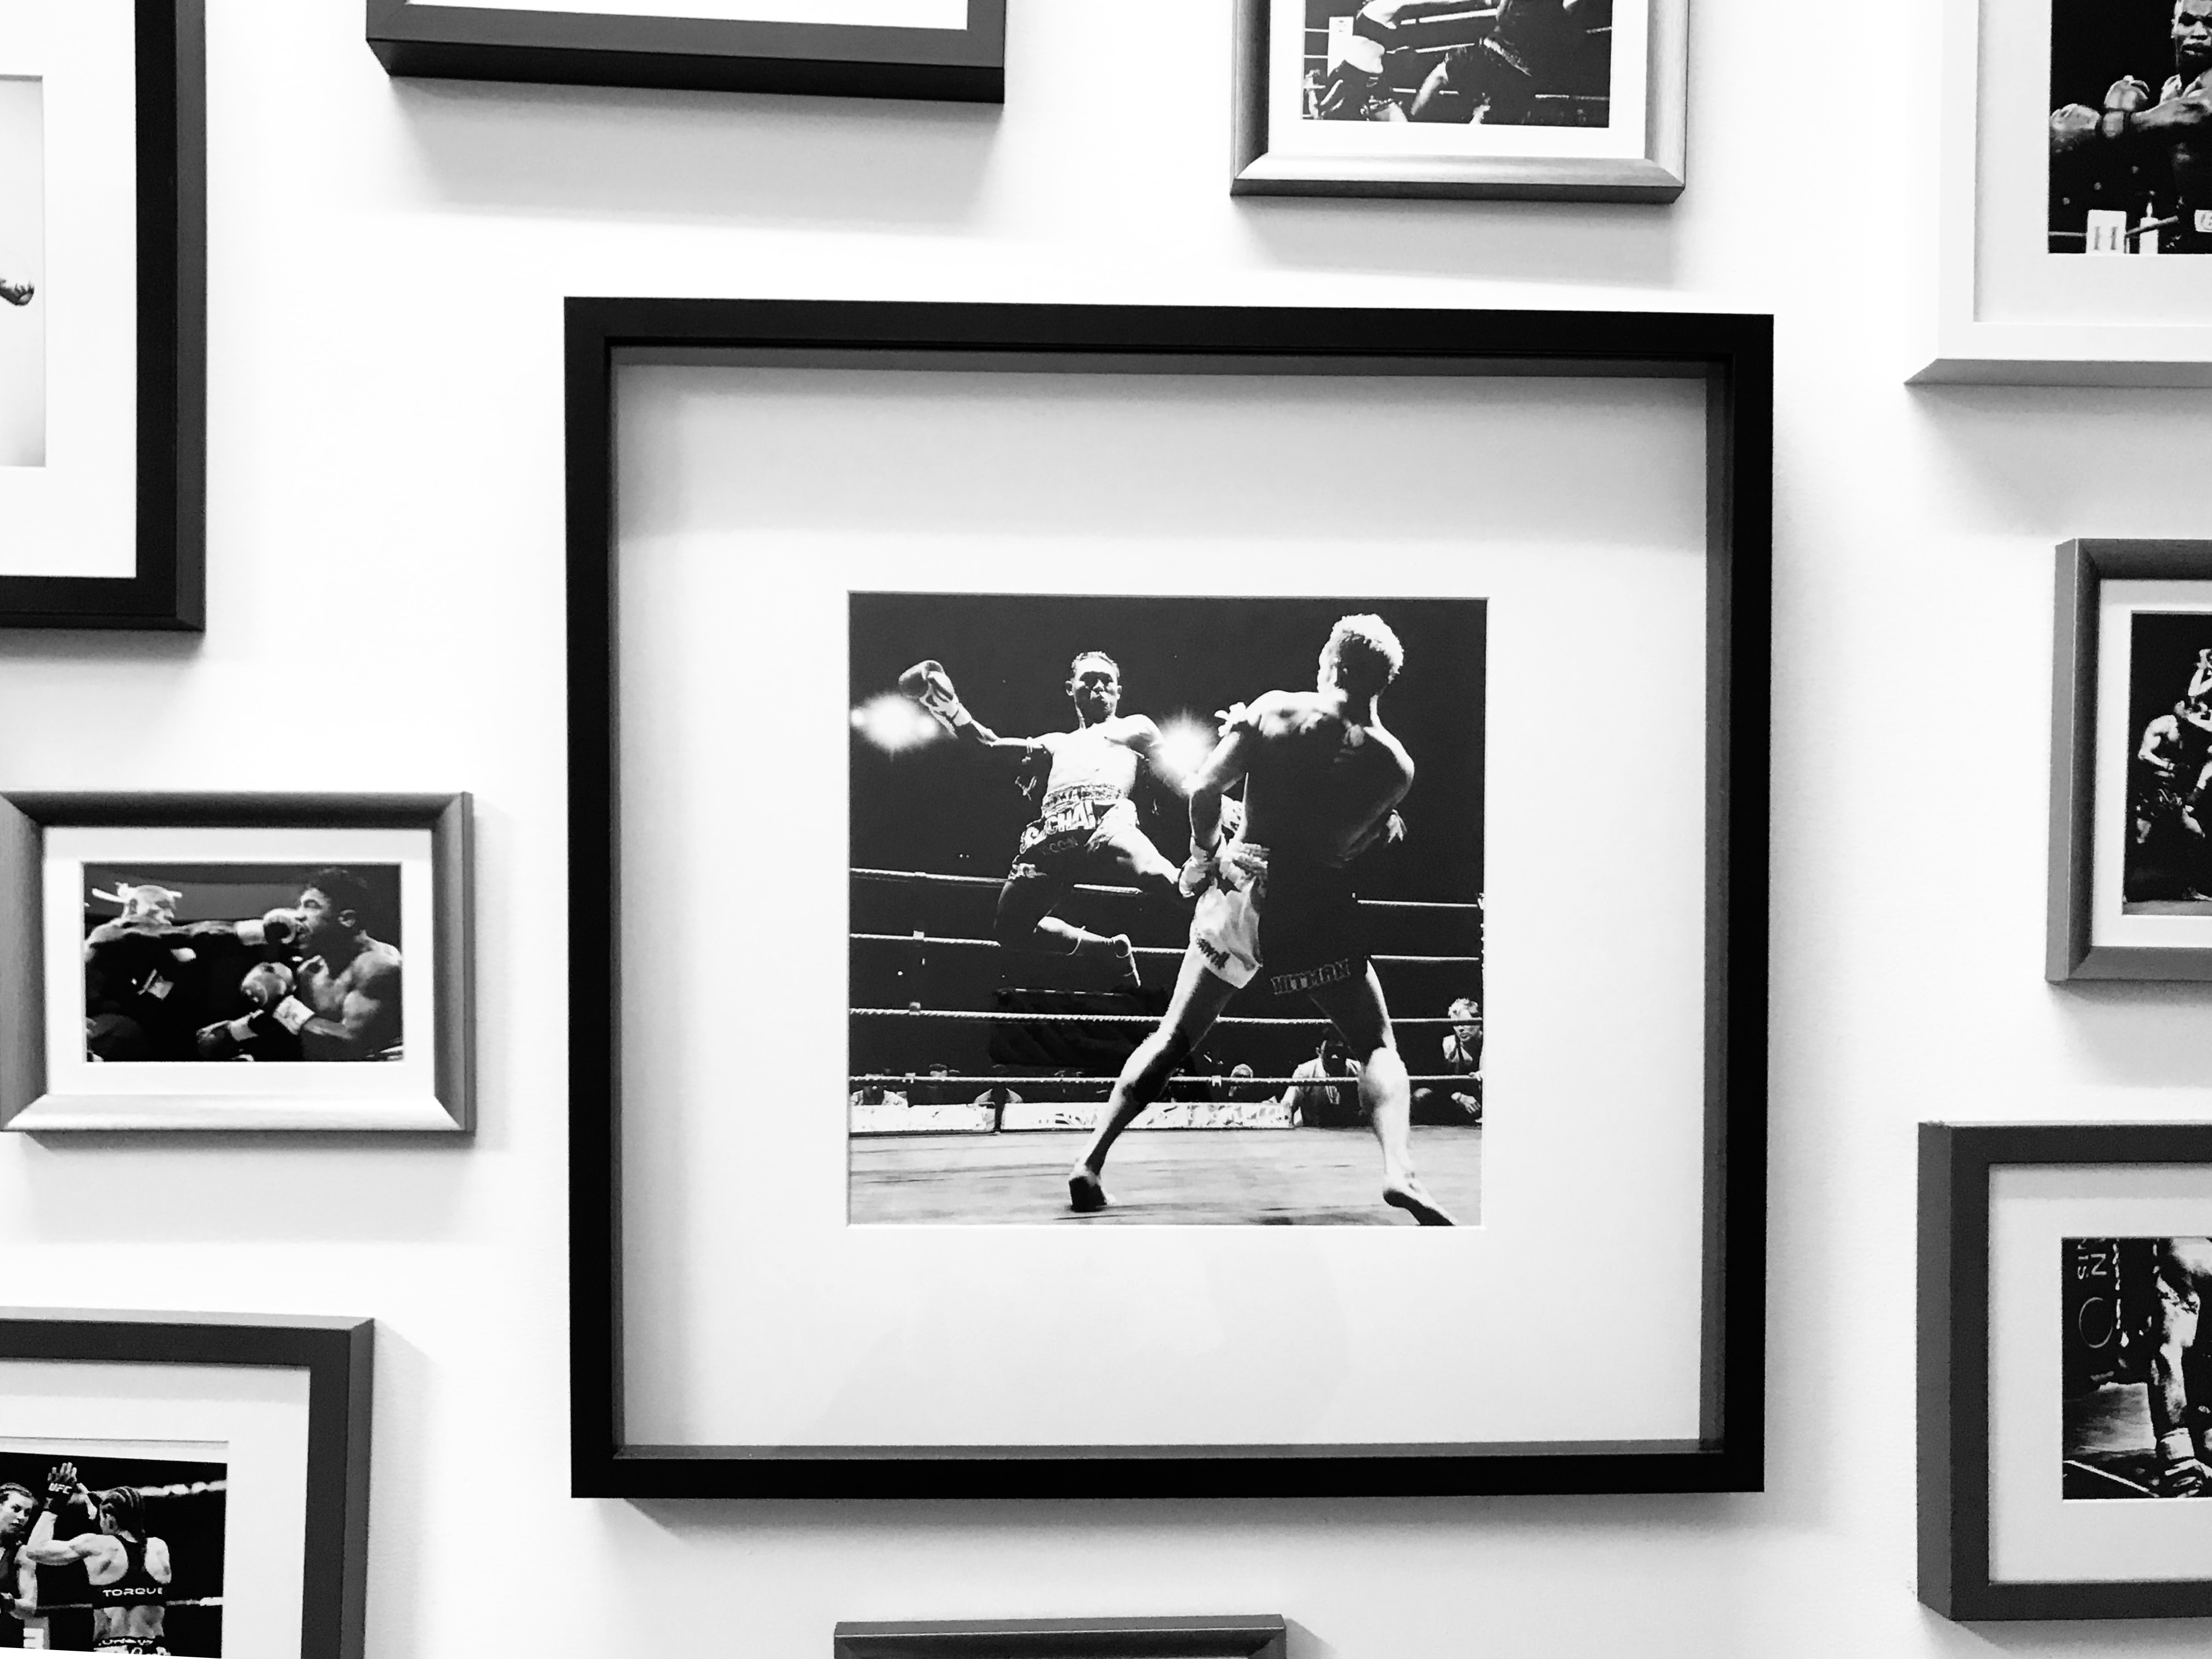 The wall of great fighters